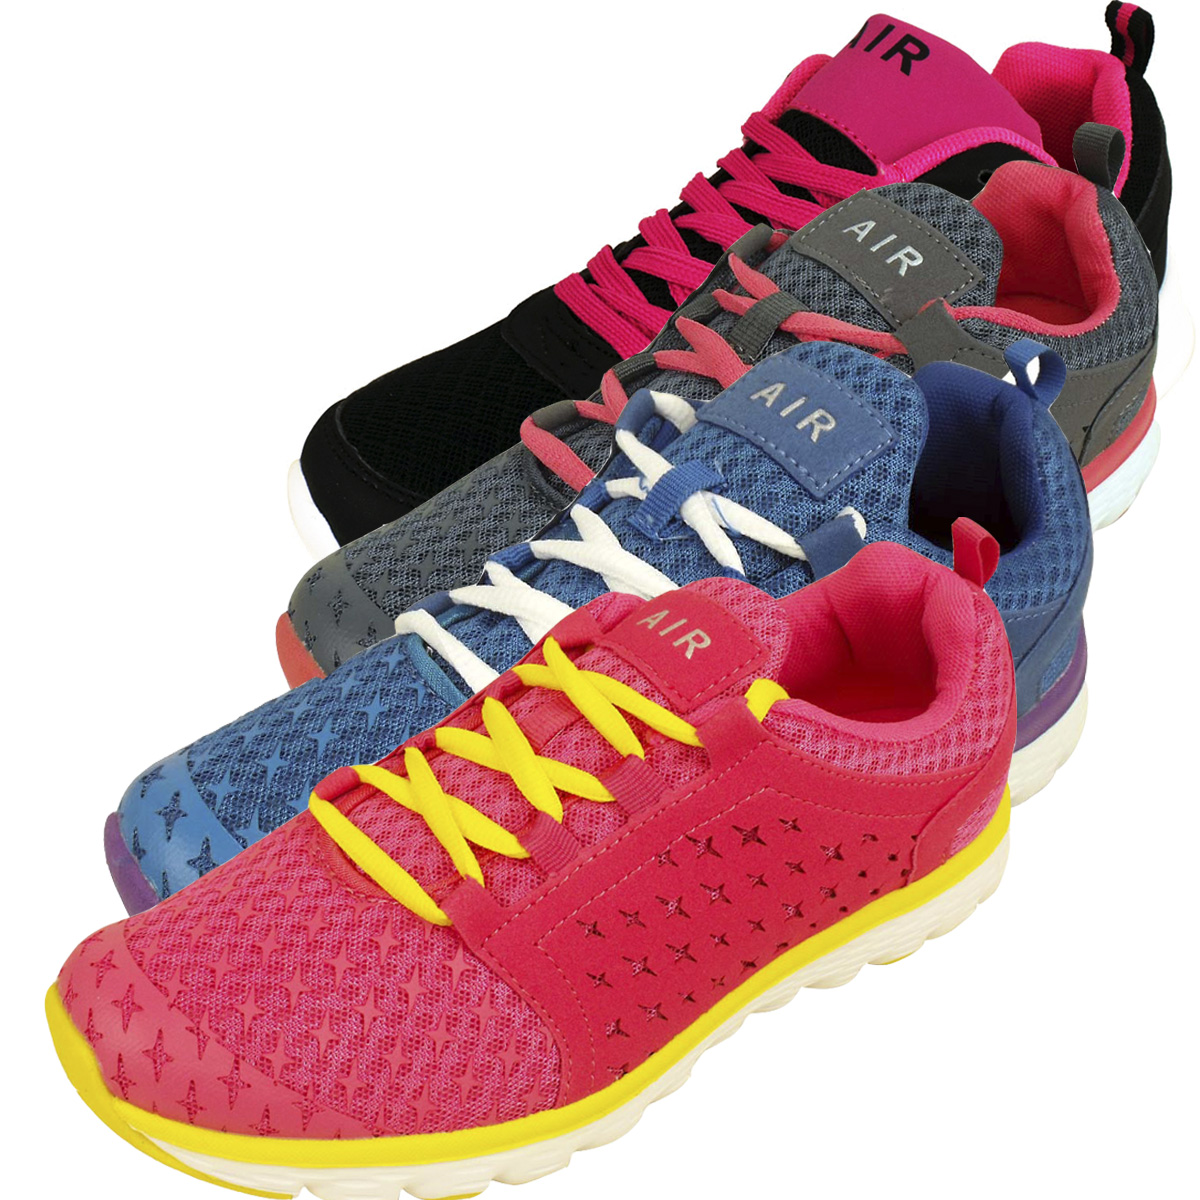 4a42e7743e46 Womens Shock Absorbing Running Shoes Trainers Ladies Gym Shoe ...